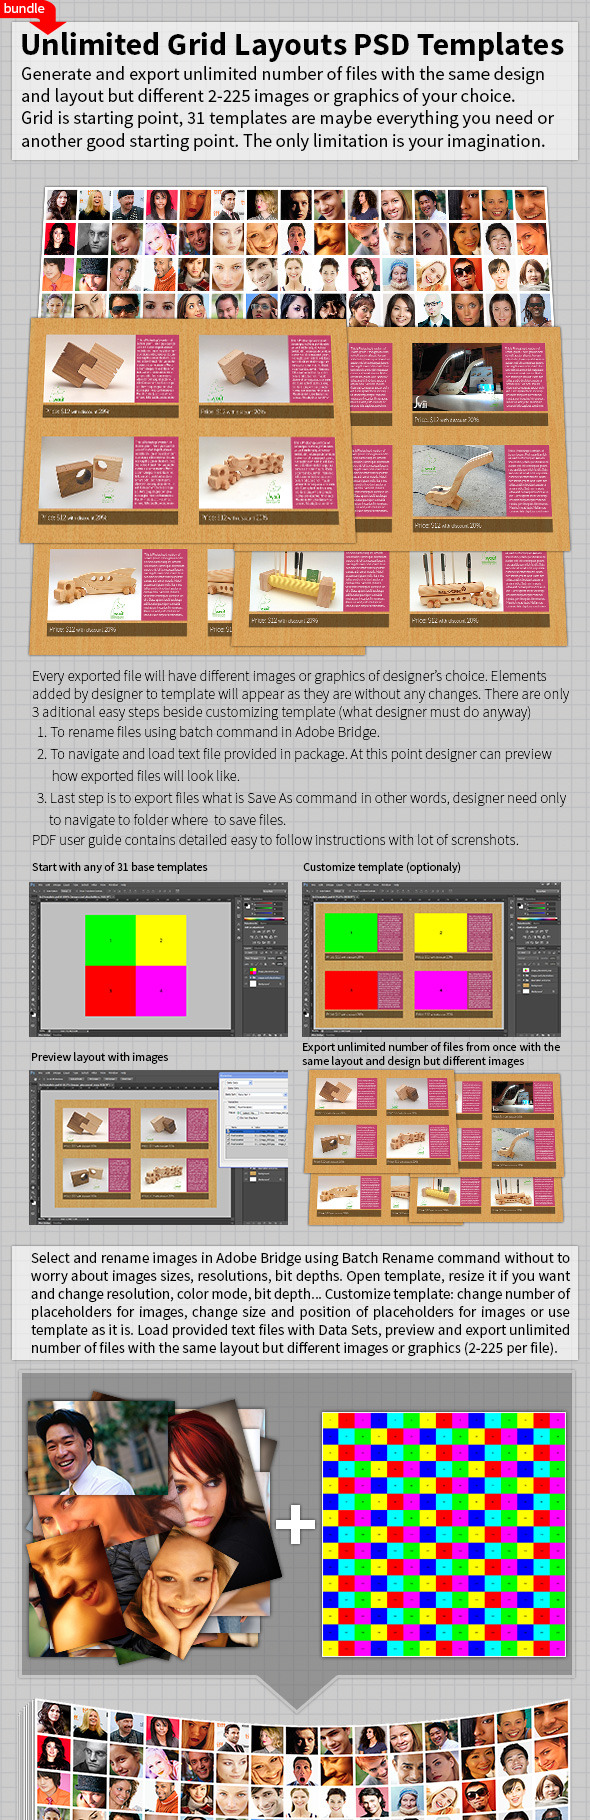 Unlimited Grid Layouts PSD Templates Bundle - Photoshop Add-ons